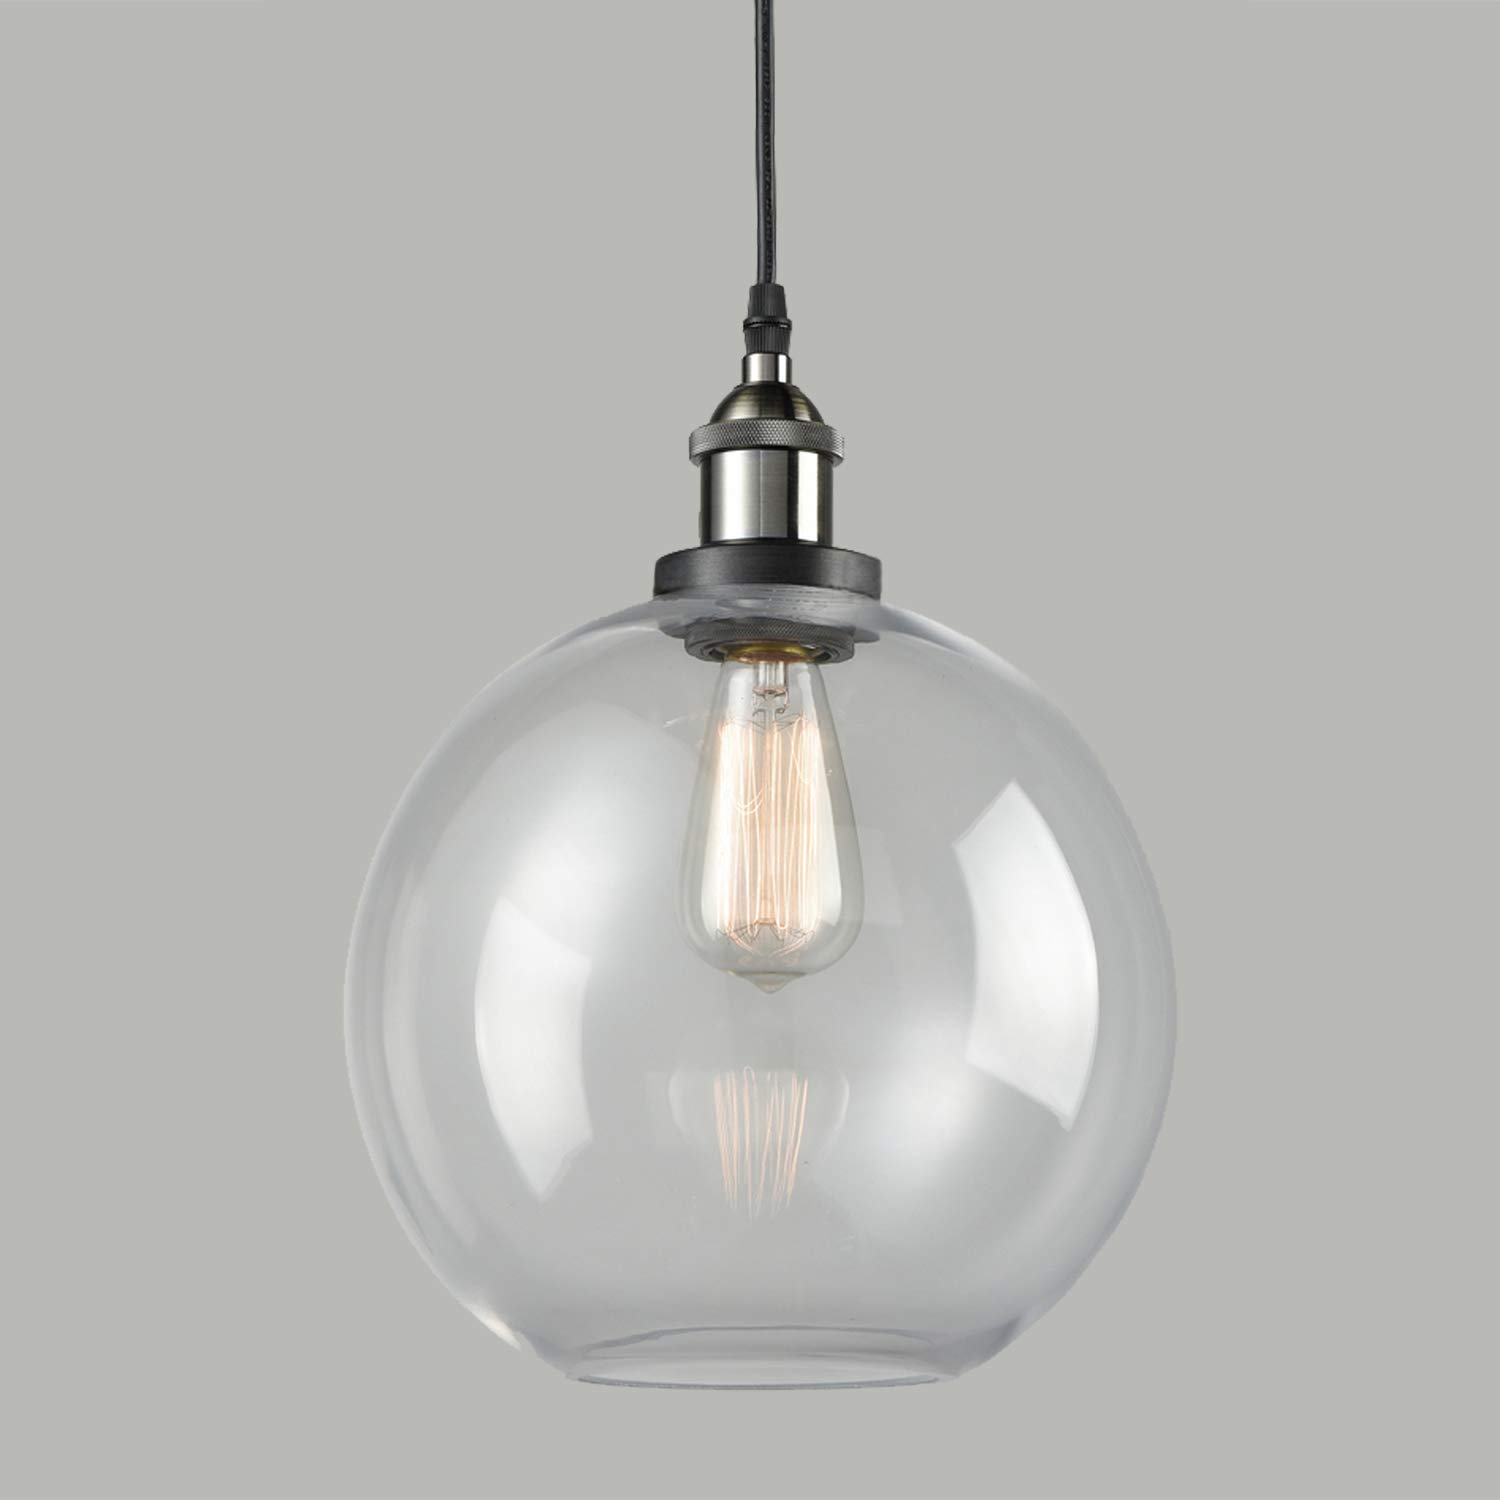 finest selection af064 f4f3c AXILAND Industrial Pendant Lighting with Globe Glass Pendant Light